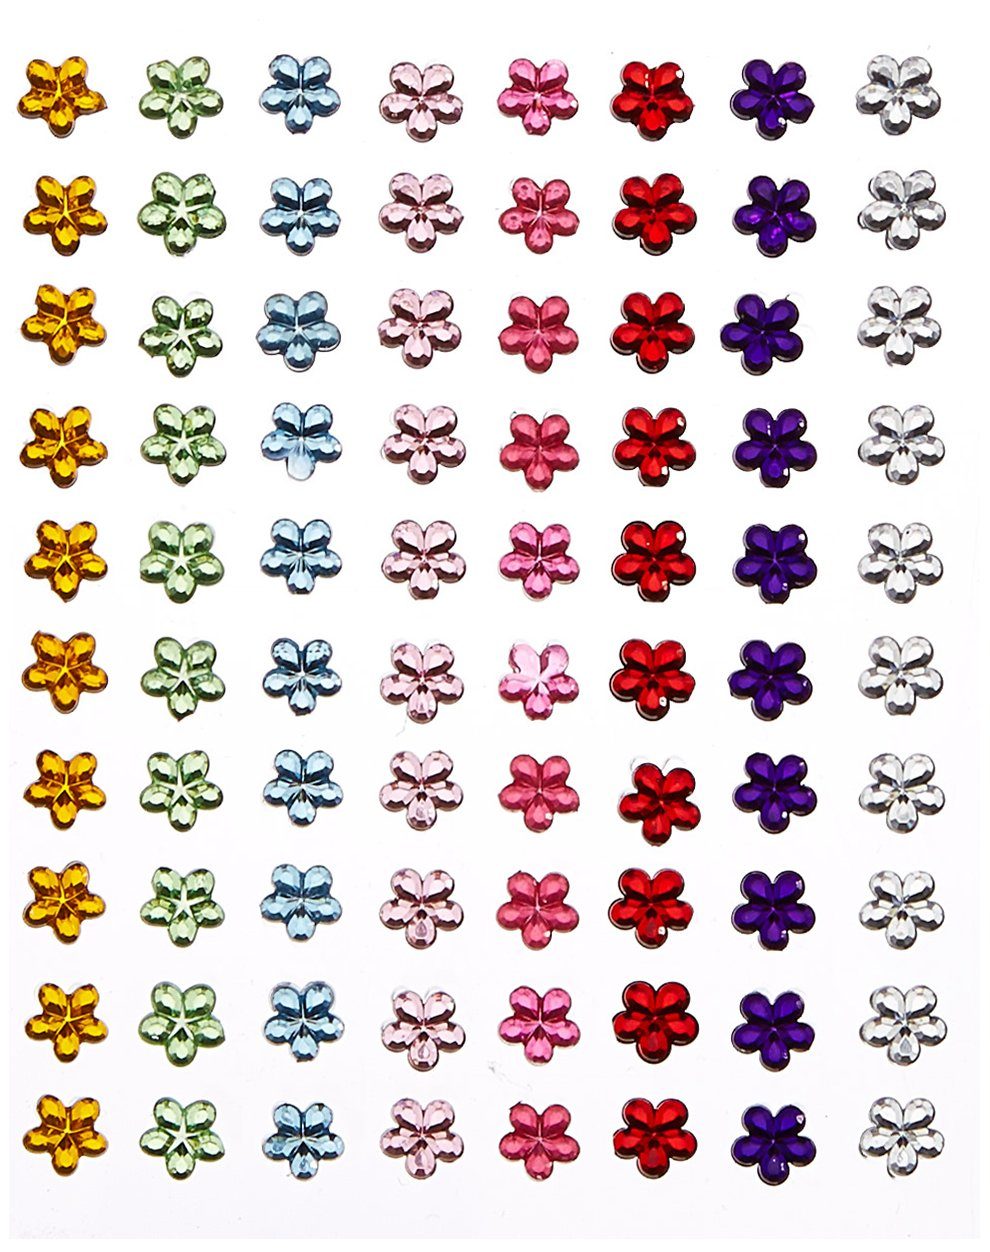 6mm Clear Flower ✽ Self Adhesive Stick on Gems ✽ 100 per sheet